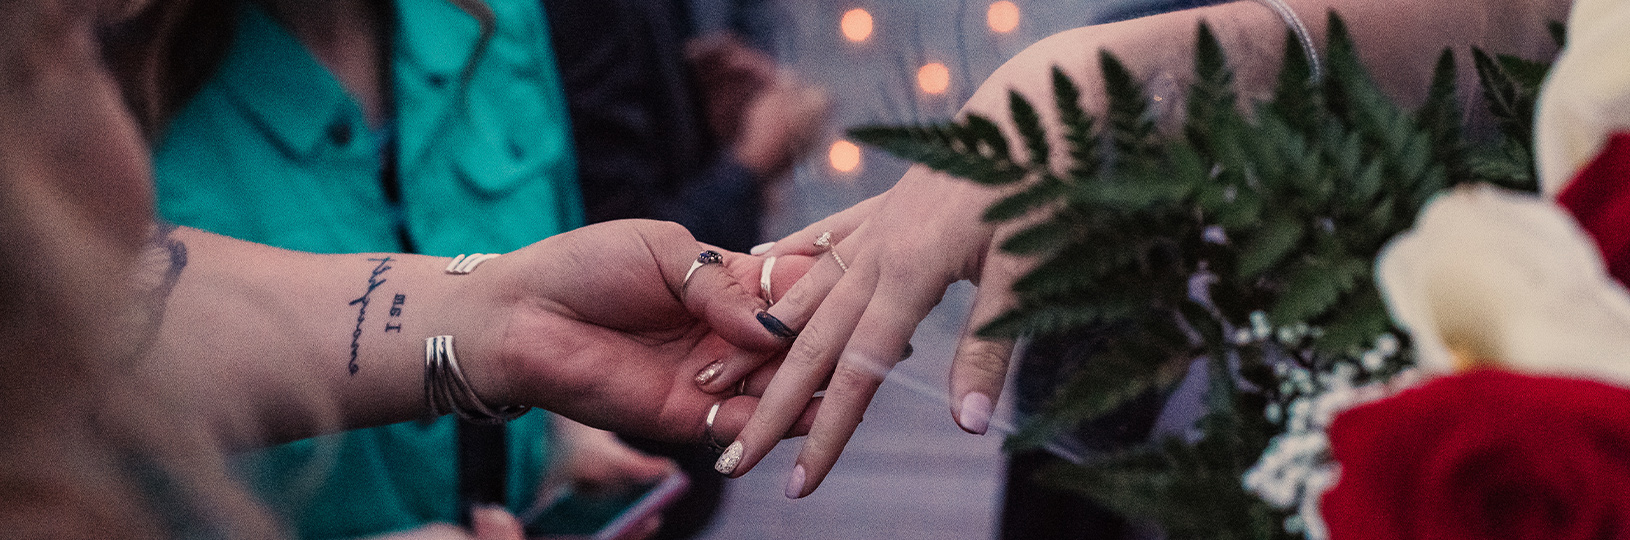 Showing off a new engagement ring